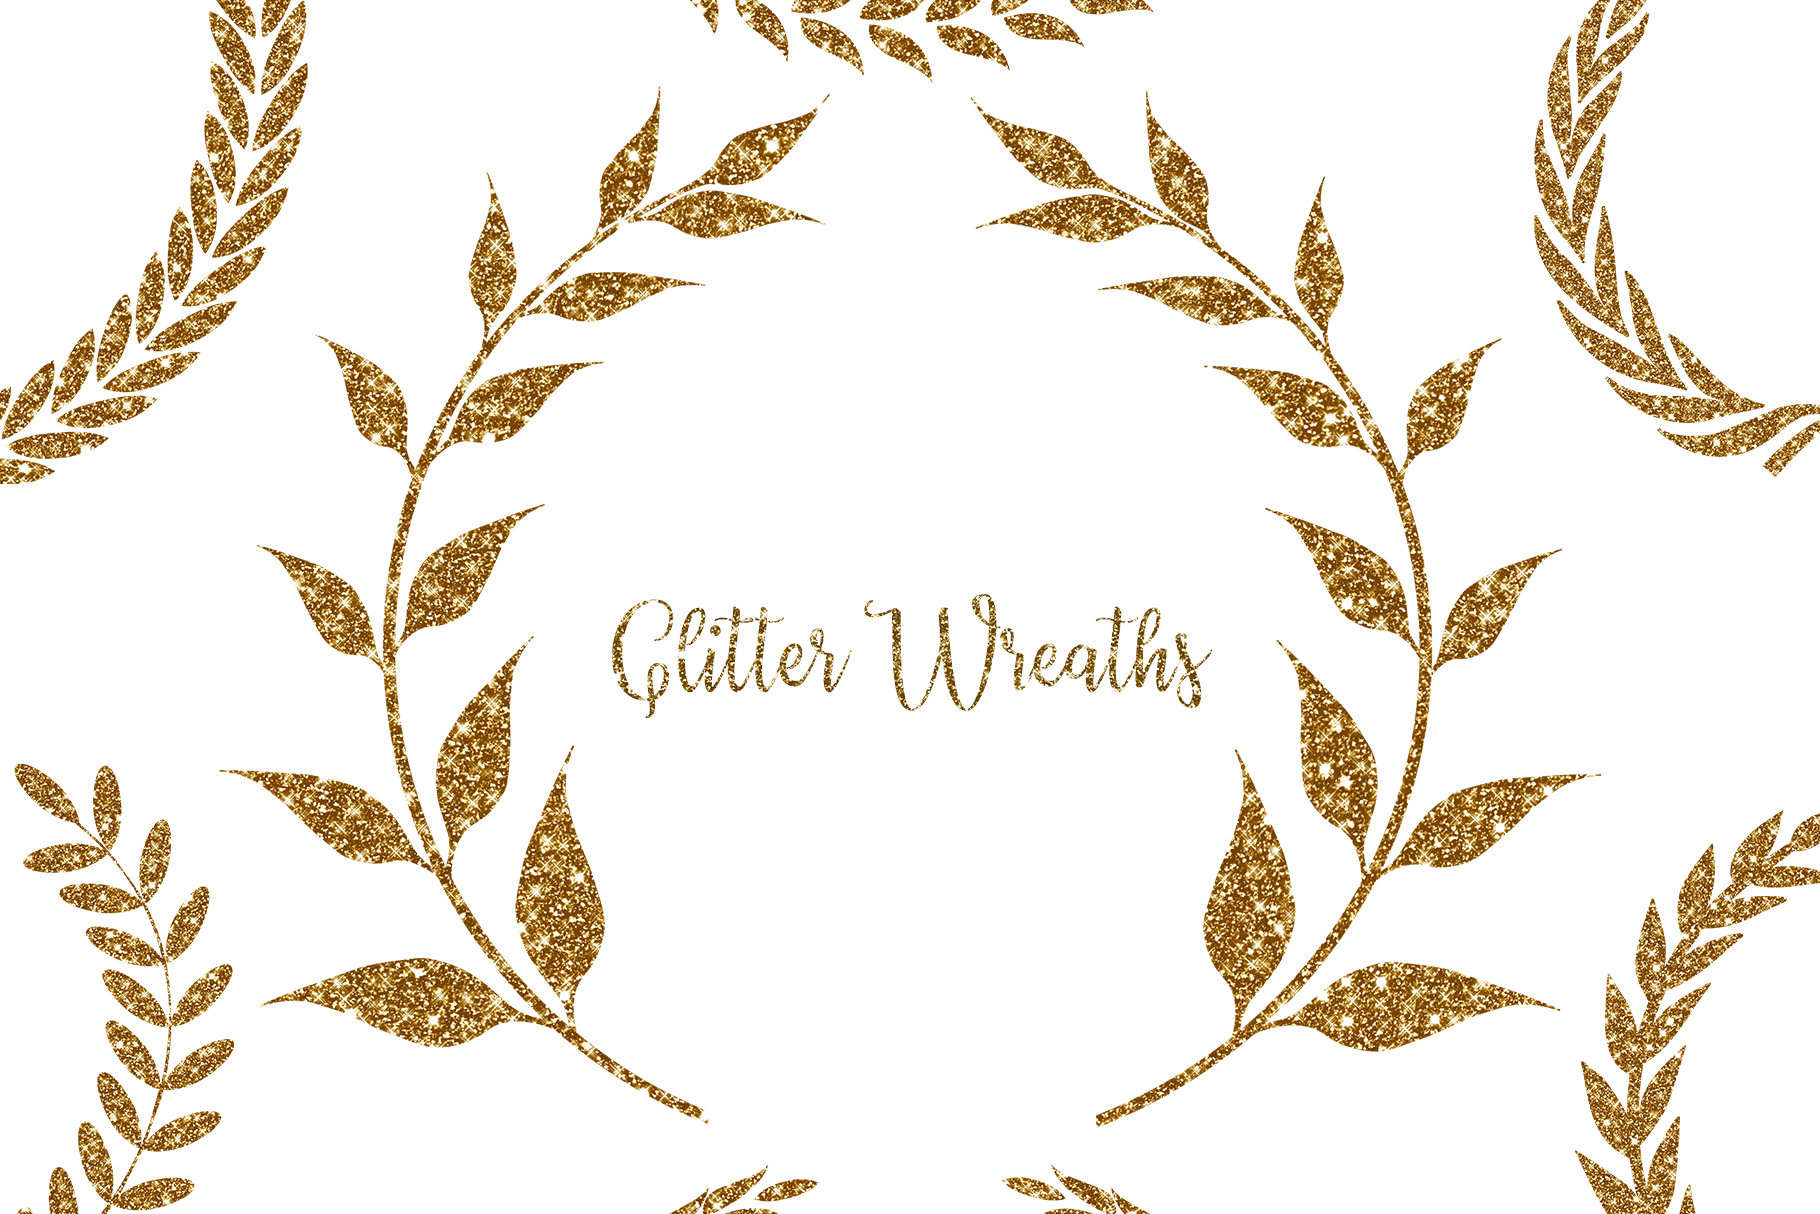 Download Free Glitter Wreaths Clipart Glitter Frame Graphic By Bonadesigns Creative Fabrica for Cricut Explore, Silhouette and other cutting machines.